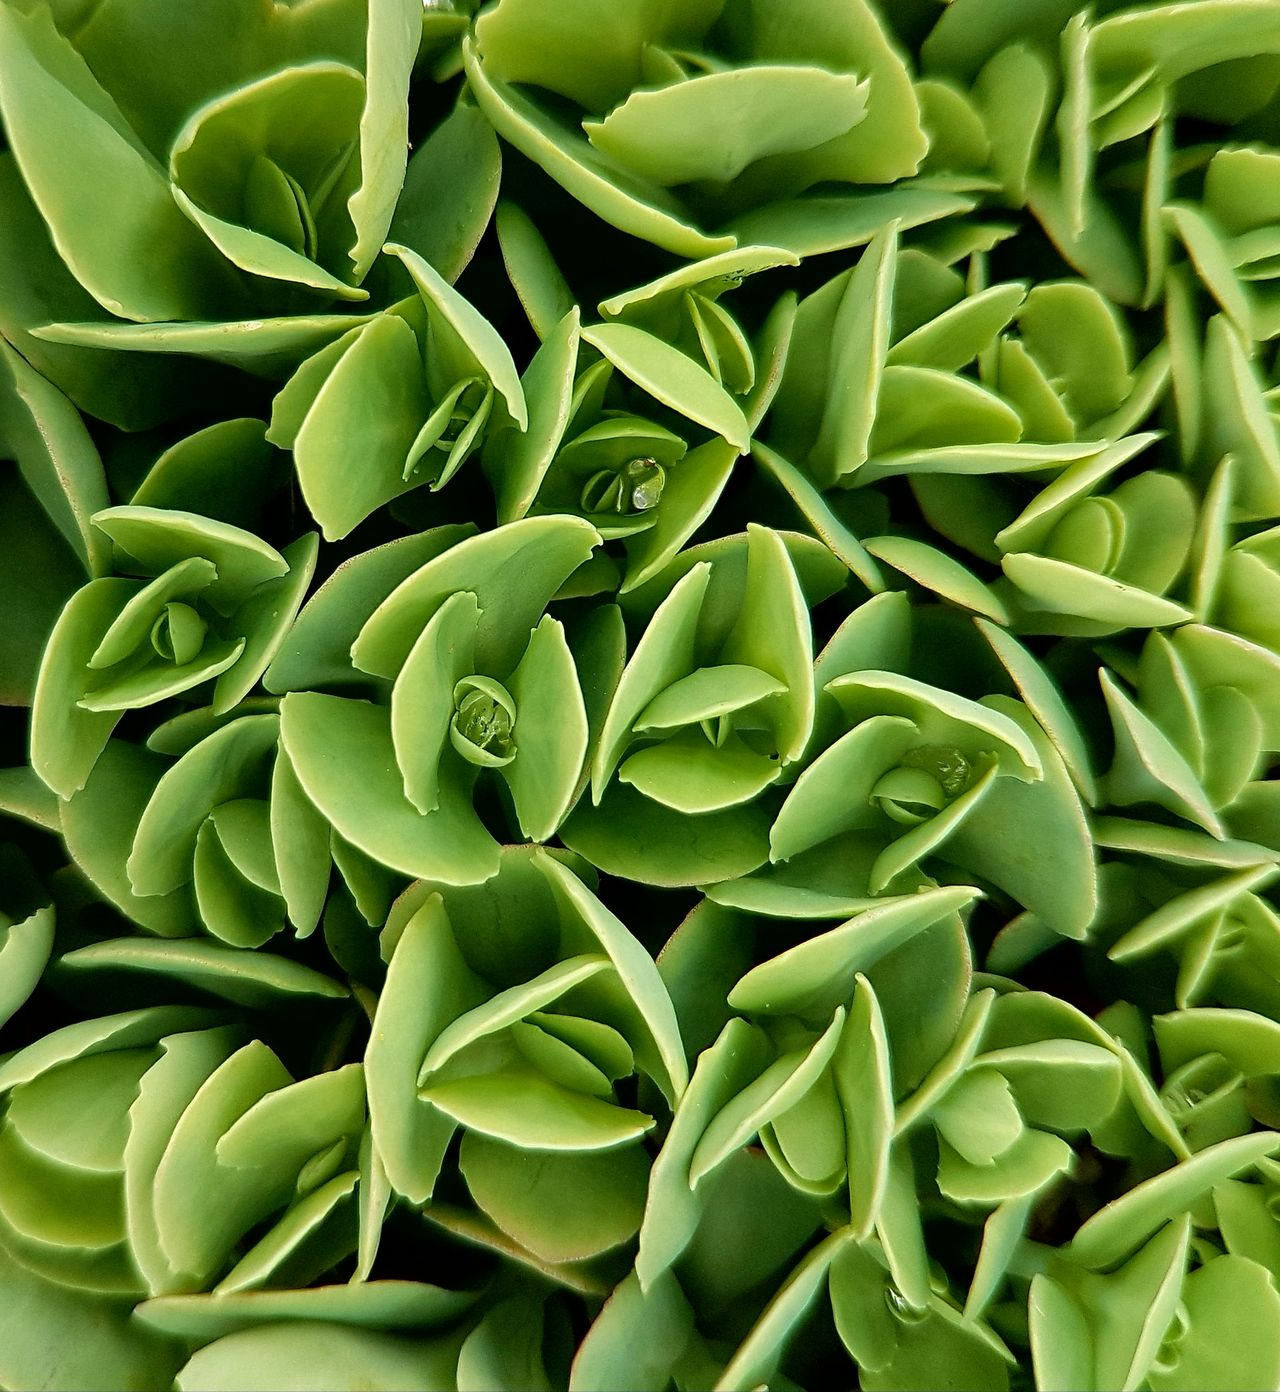 Plant Green Color Plant Patterns In Nature Surface Texture Leaf Nature Green Texture Leaves Botany Plant Part Pattern Garden Photography Plant Photography Green Nature Plants Collection Green Leaves Backfround Green Background Green Leaves. Garden Cover Photo Plants Freshness Green Leaves Background